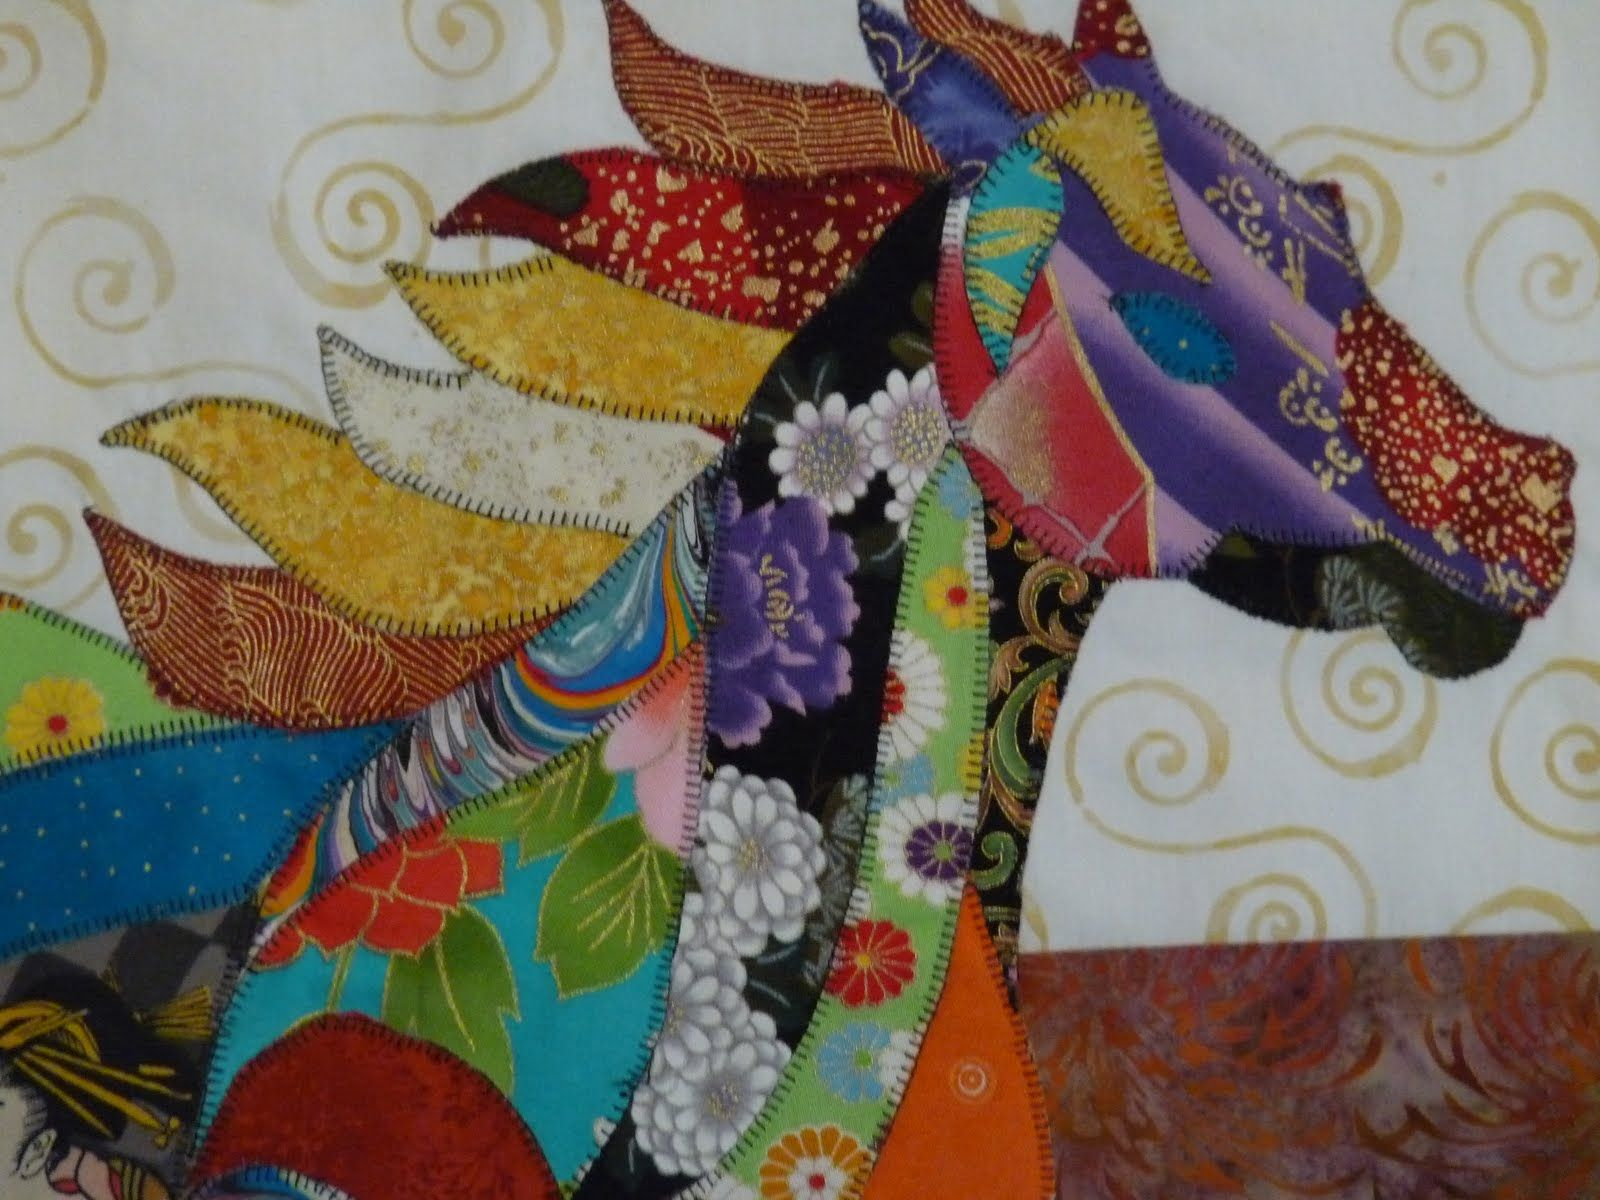 Feeling Simply Quilty: Finishing up the Horse quilt for Chelsea ... : quilt horse - Adamdwight.com